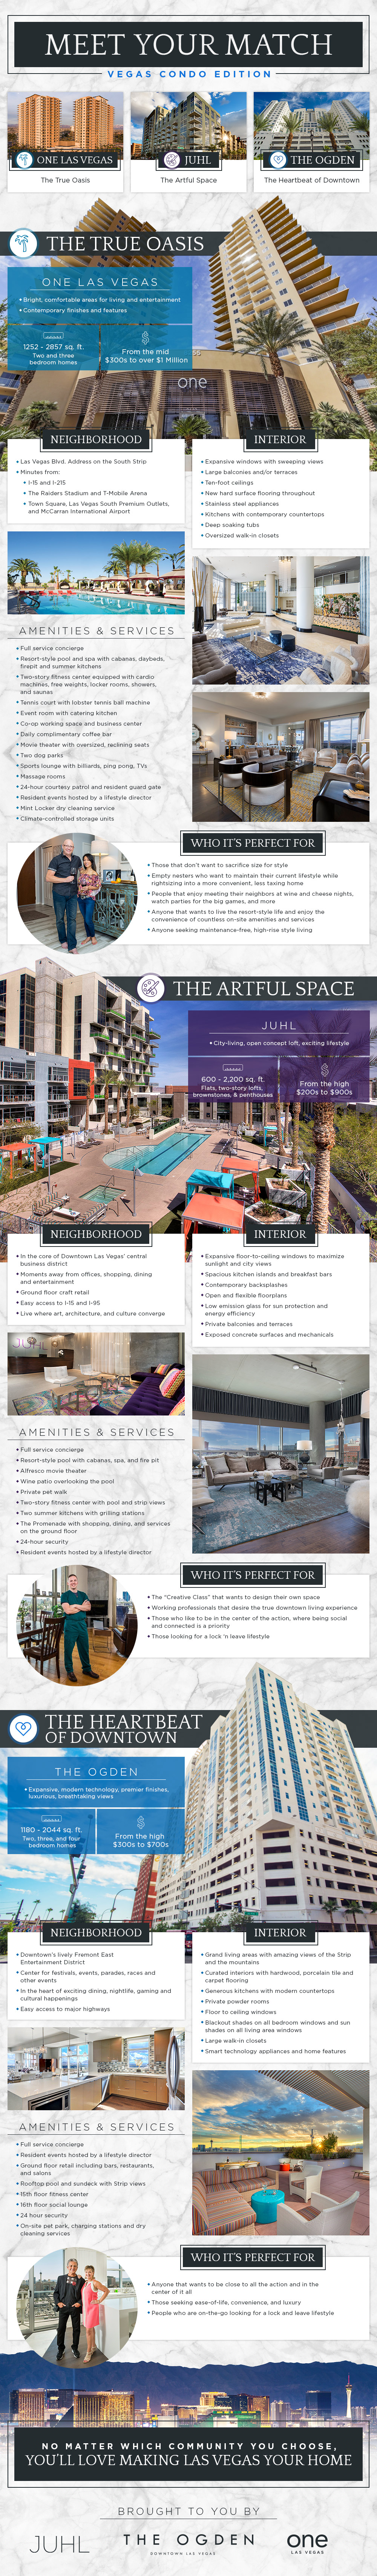 Meet Your Match: Vegas Condo Edition Infographic